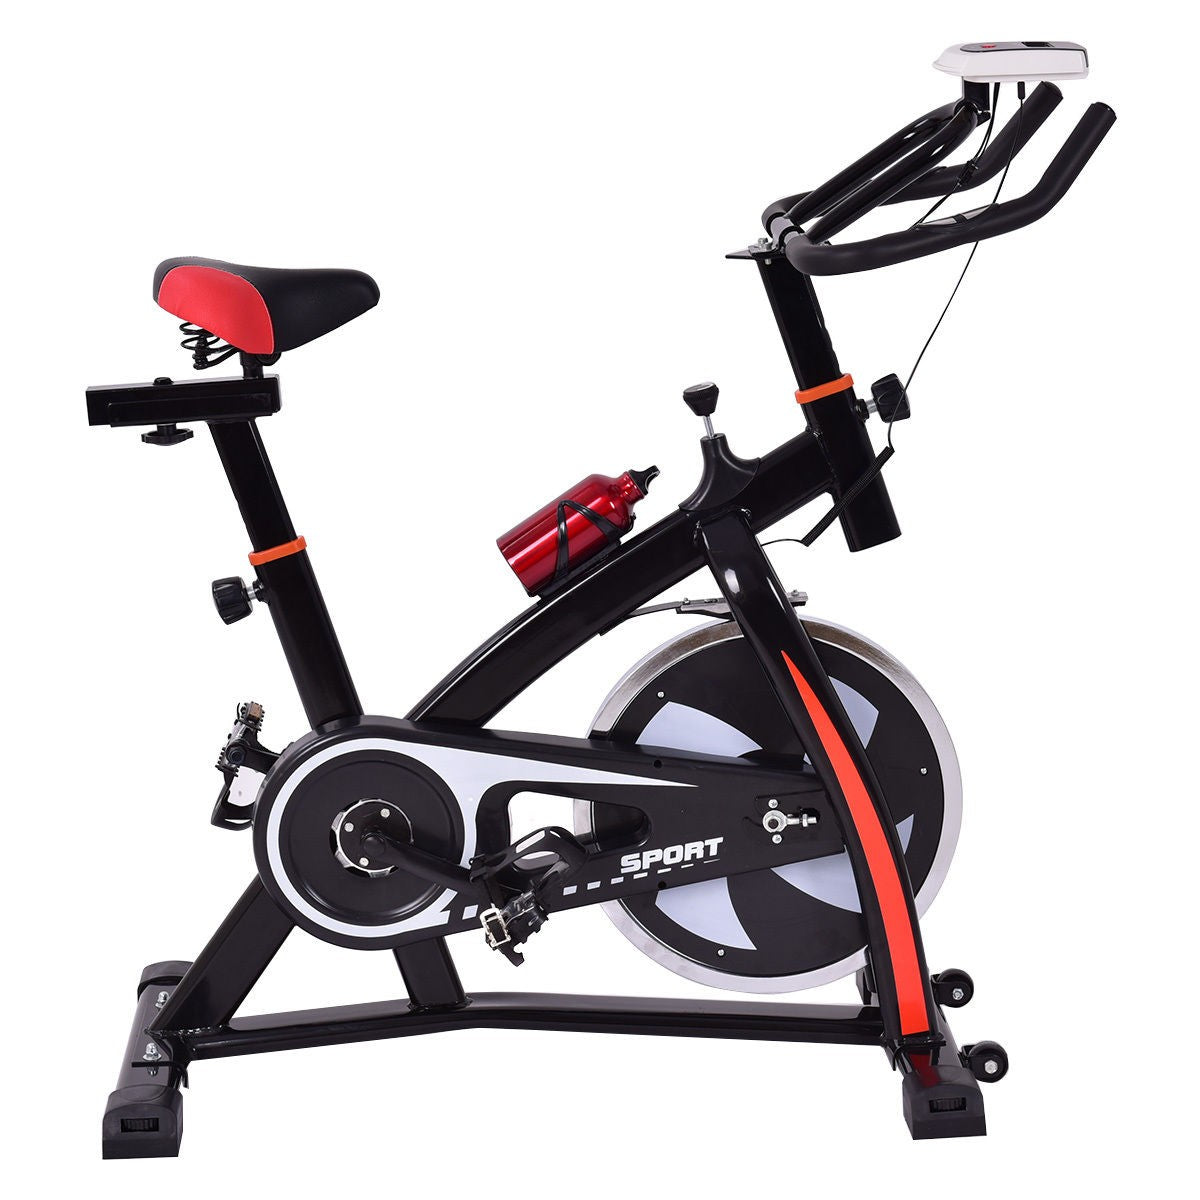 Premium Indoor Exercise Bike Cardio Stationary Spin Cycling Machine Trainer - Morealis